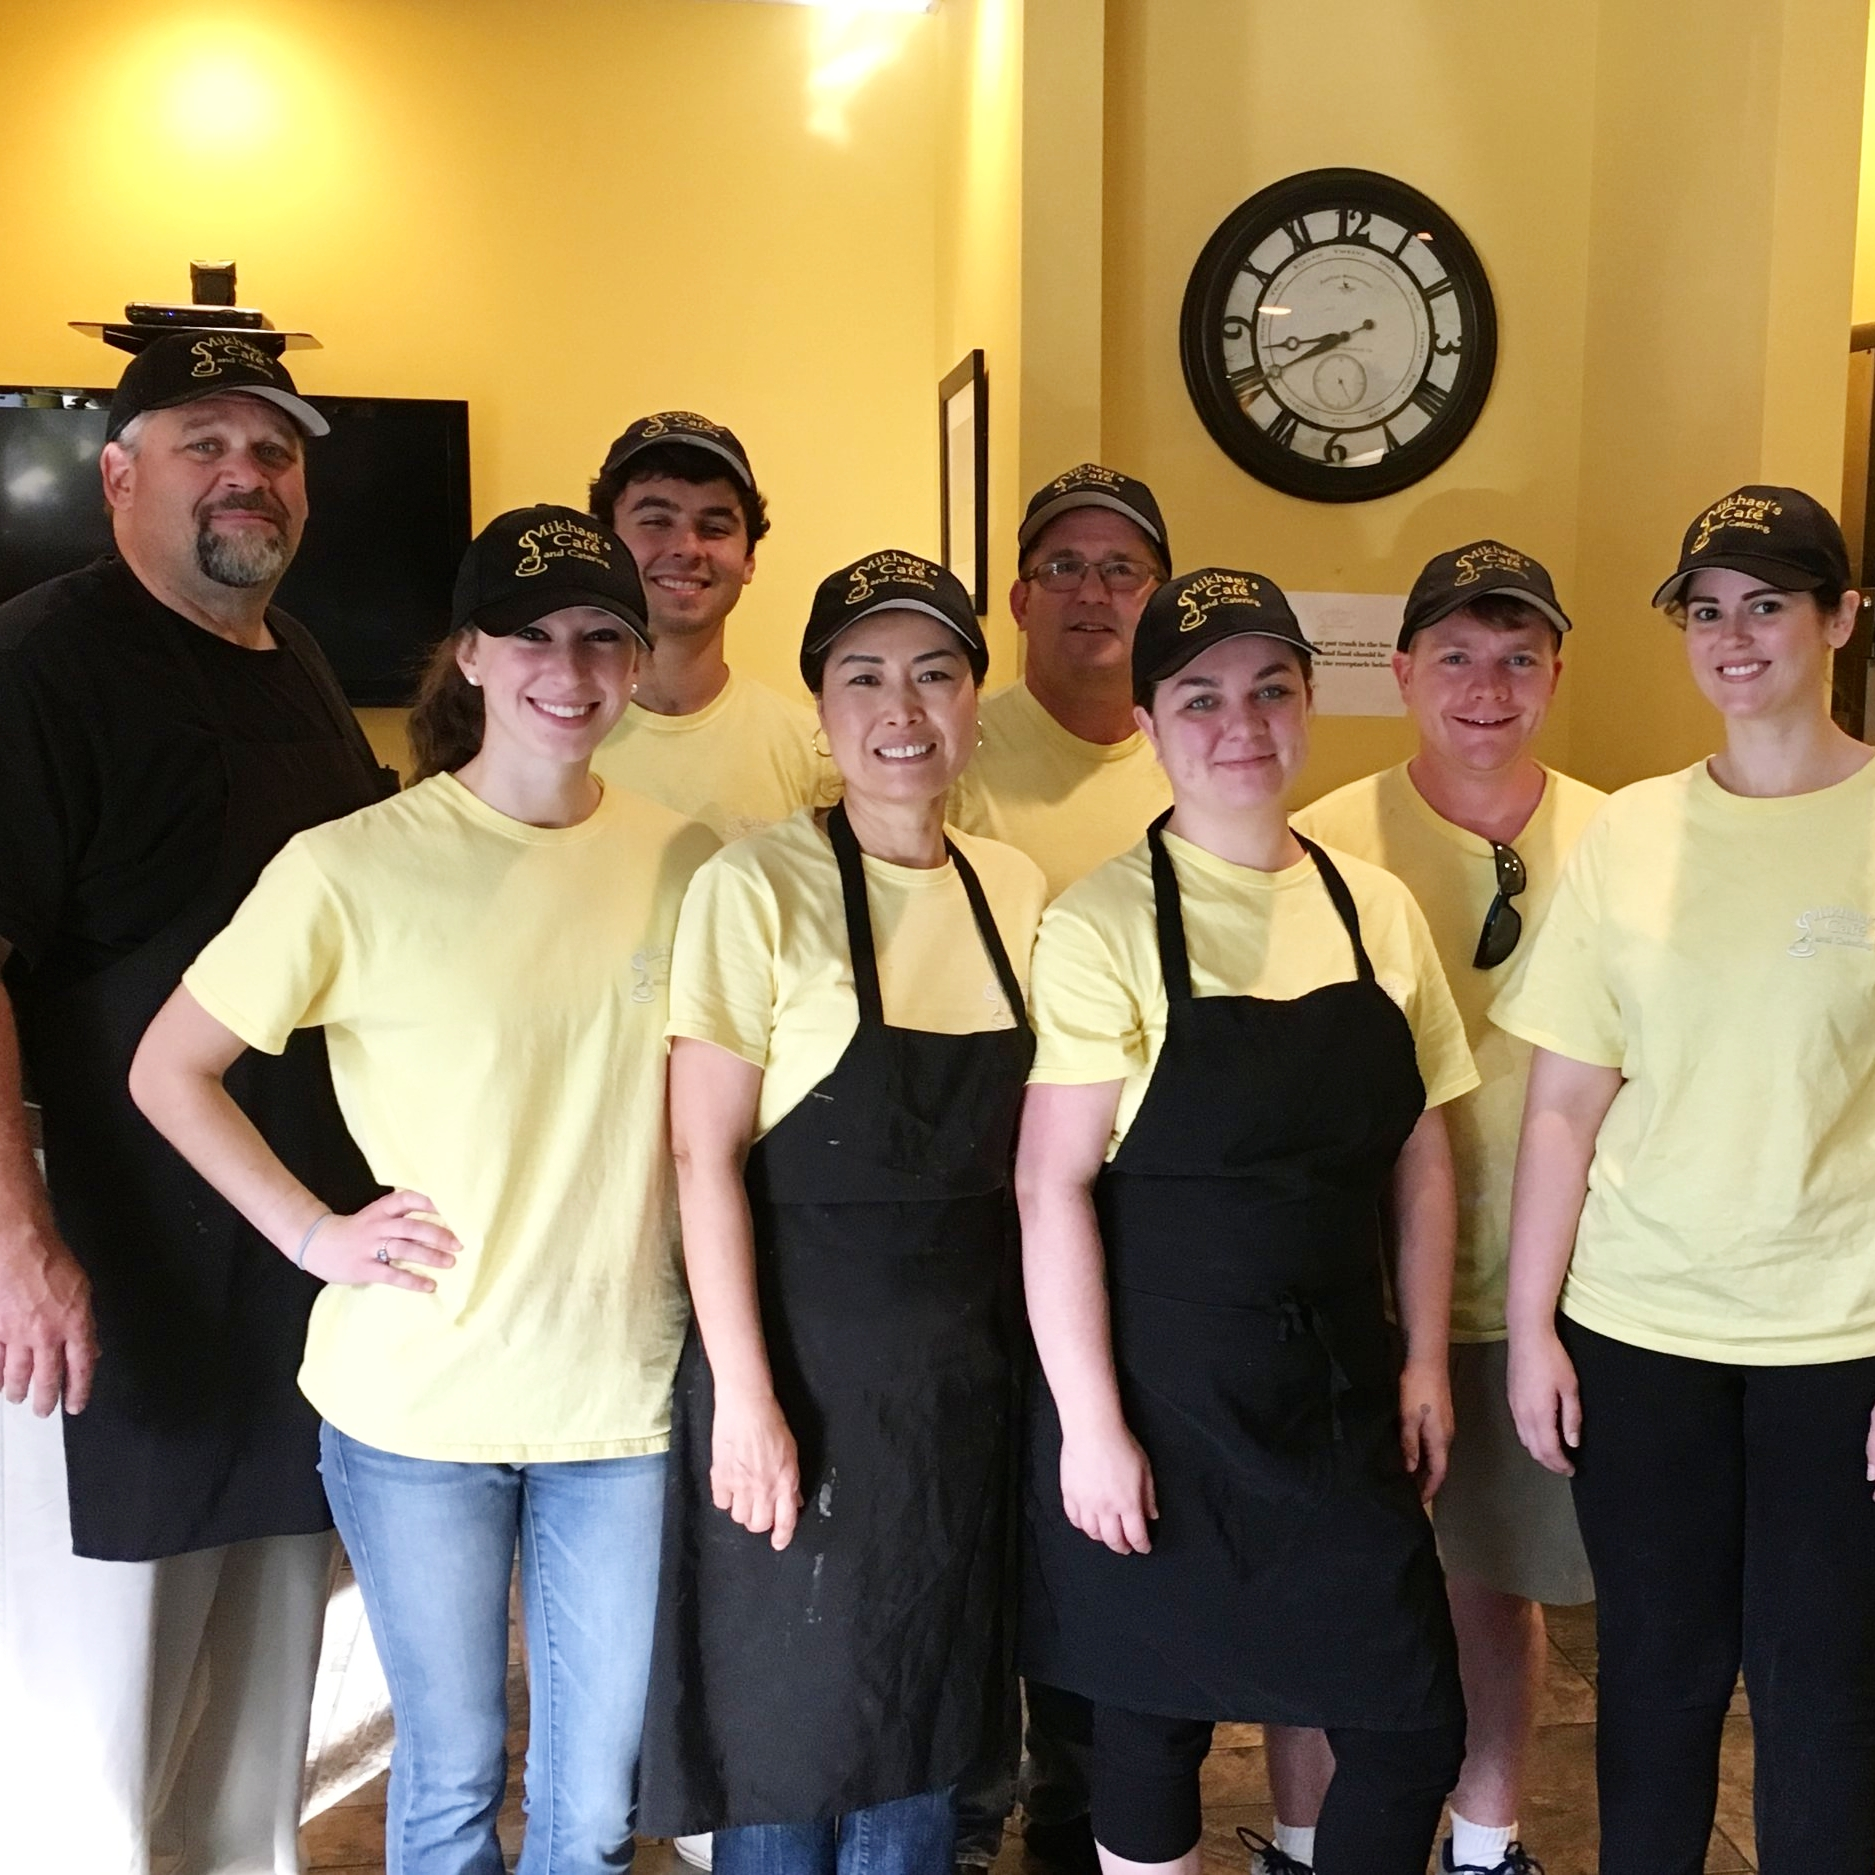 The Mikhael's Cafe Team